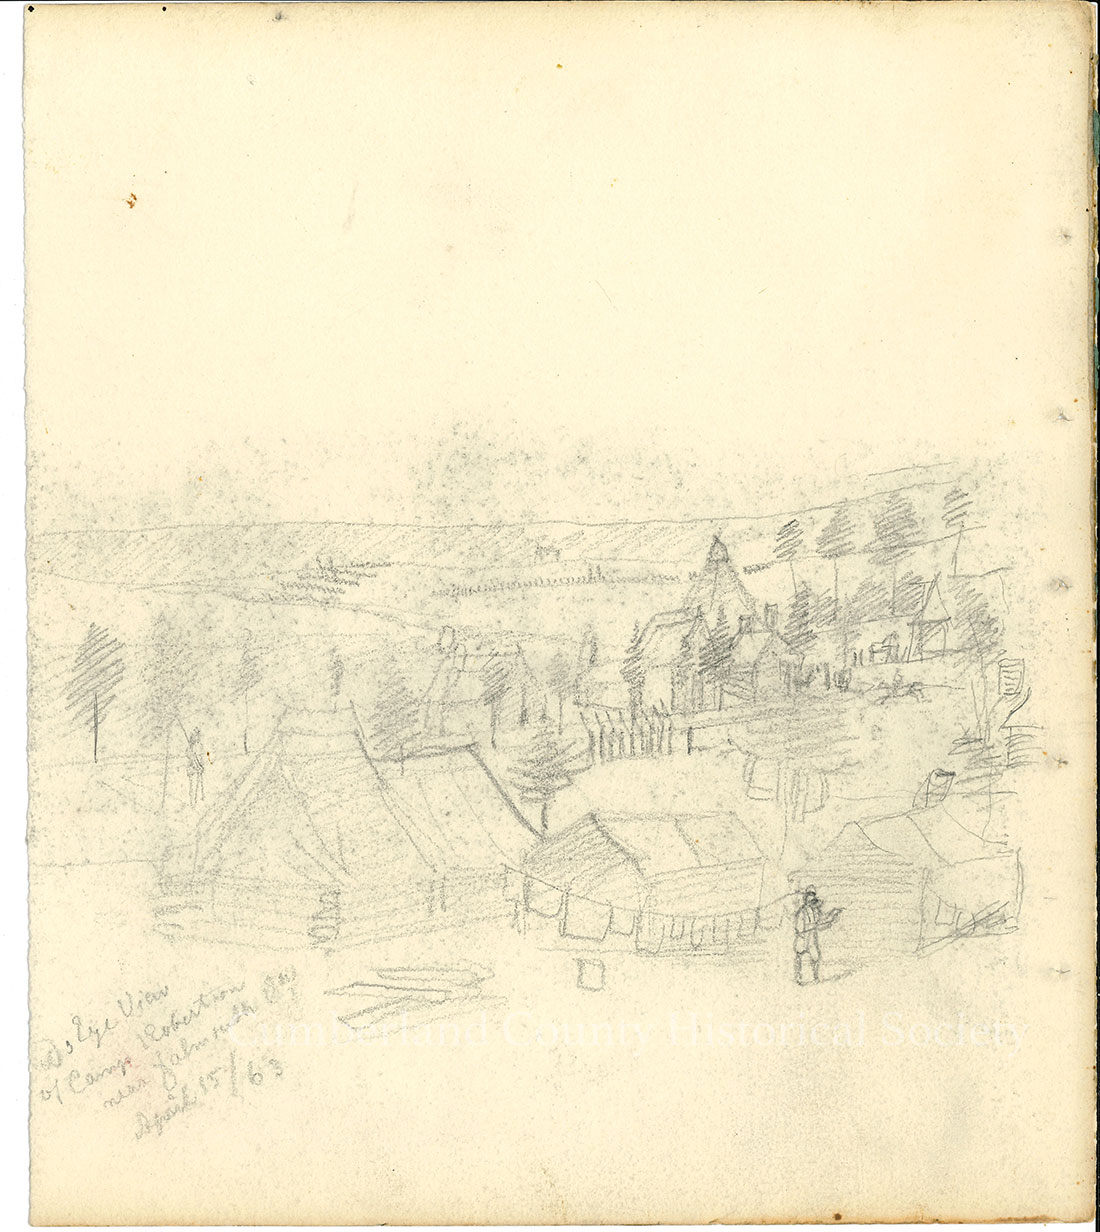 Camp Robertson April 15, 1863 Image